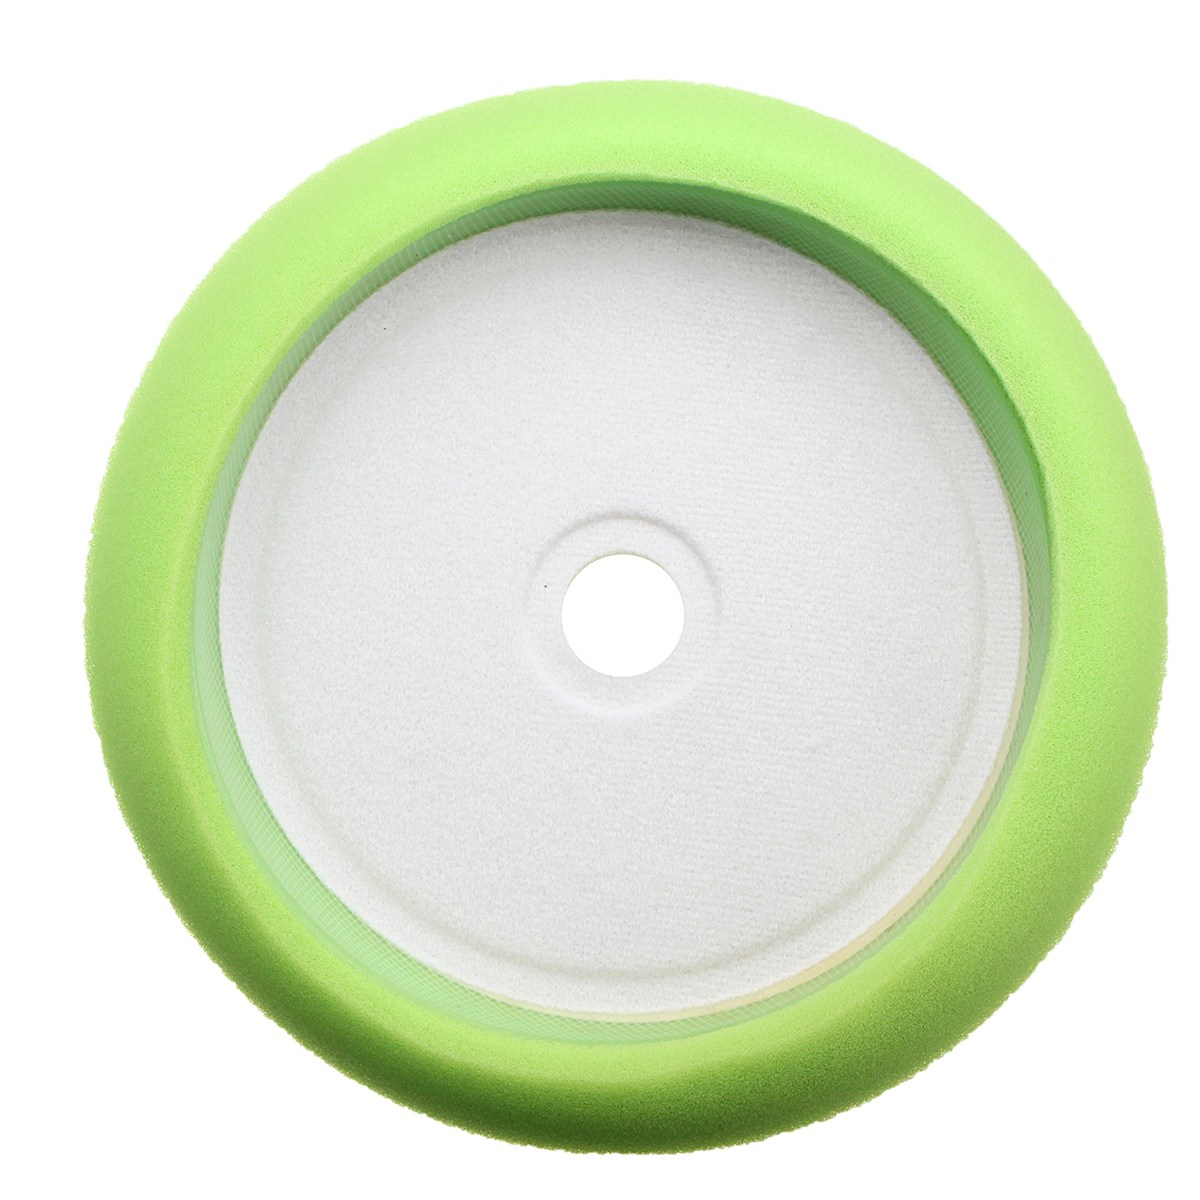 20cm Polishing Buffing Sponge Foam Pad Wheel Scratch Removal Car Auto Polisher